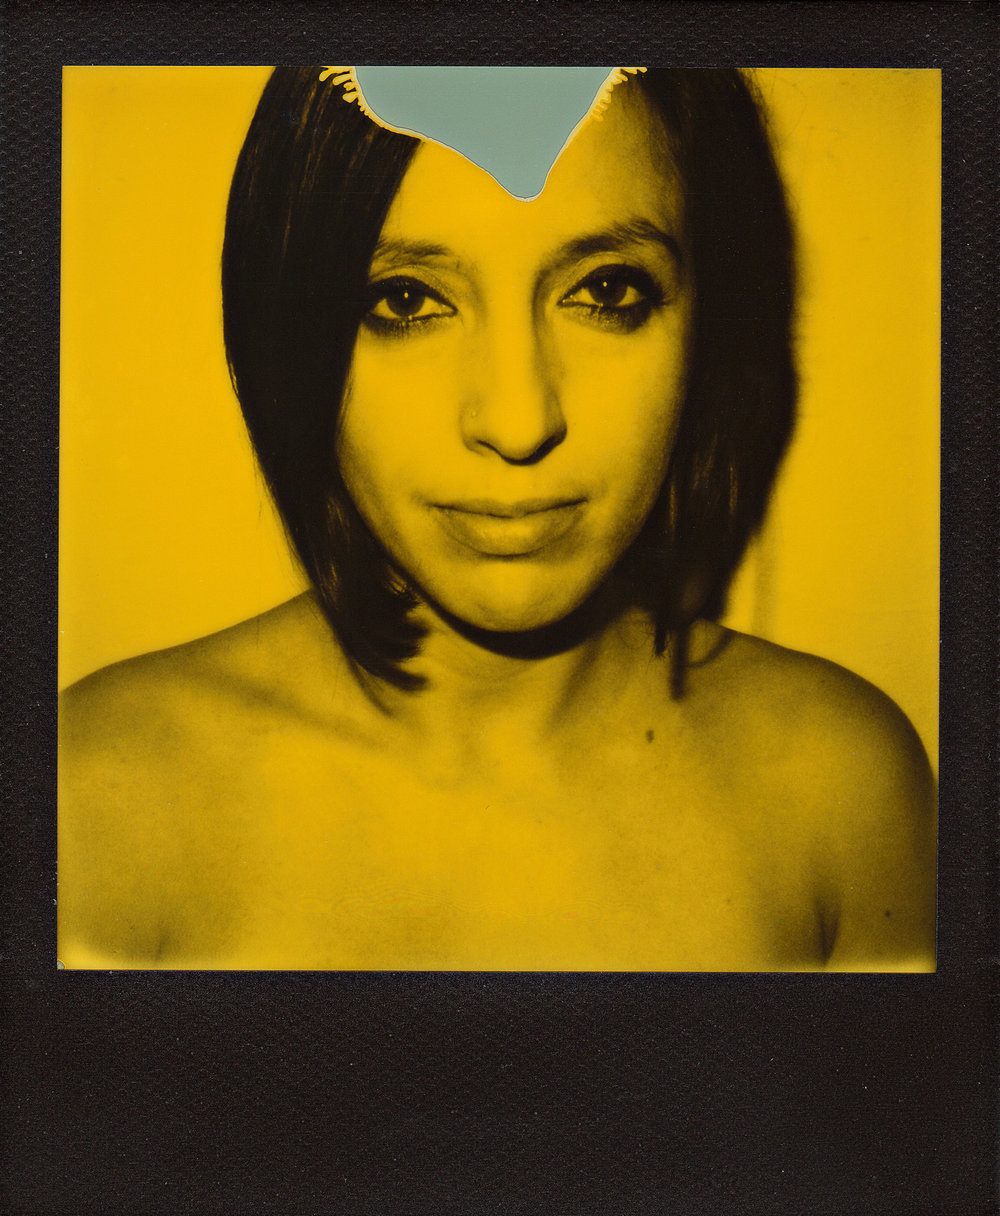 Rita, 2015 Polaroid SLR 680 + Impossible Third Man Records edition. ©Alessandro Burato